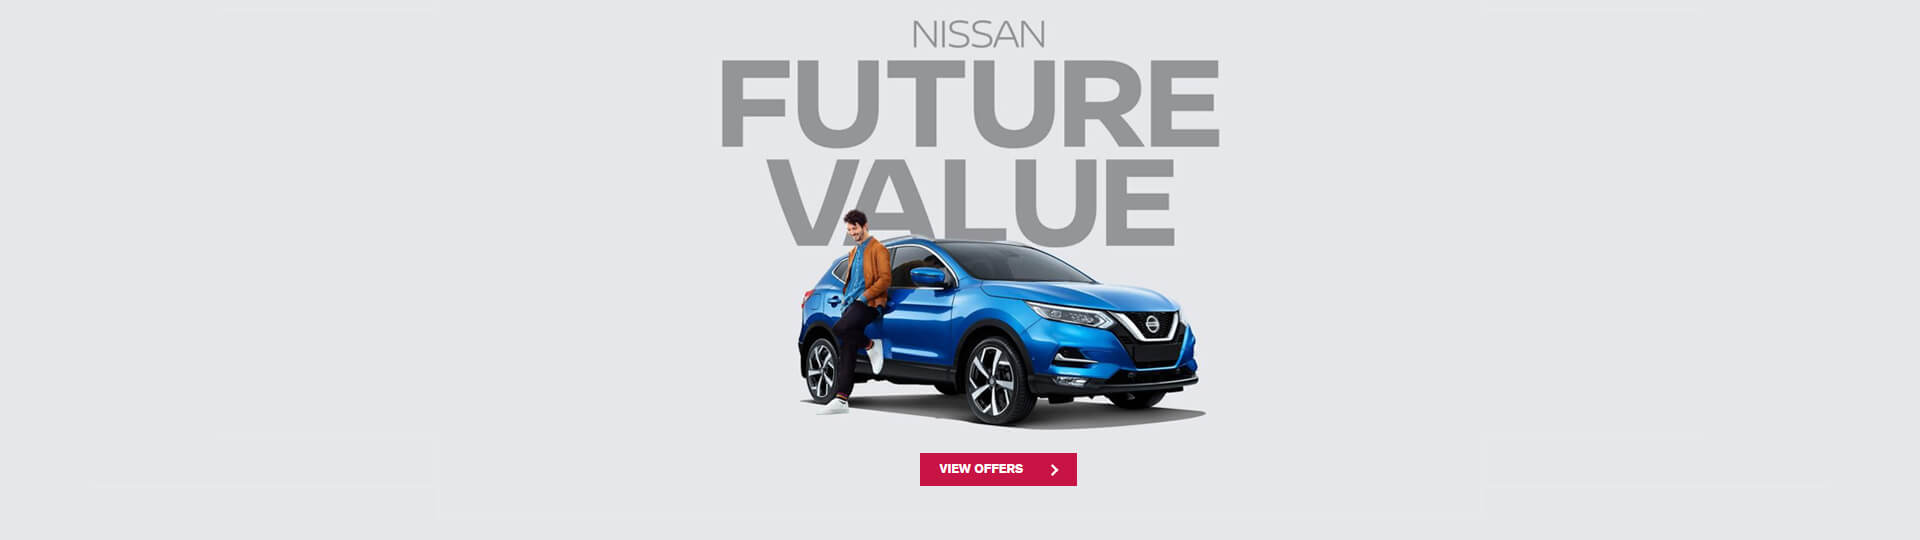 2019 Nissan Plate Clearance